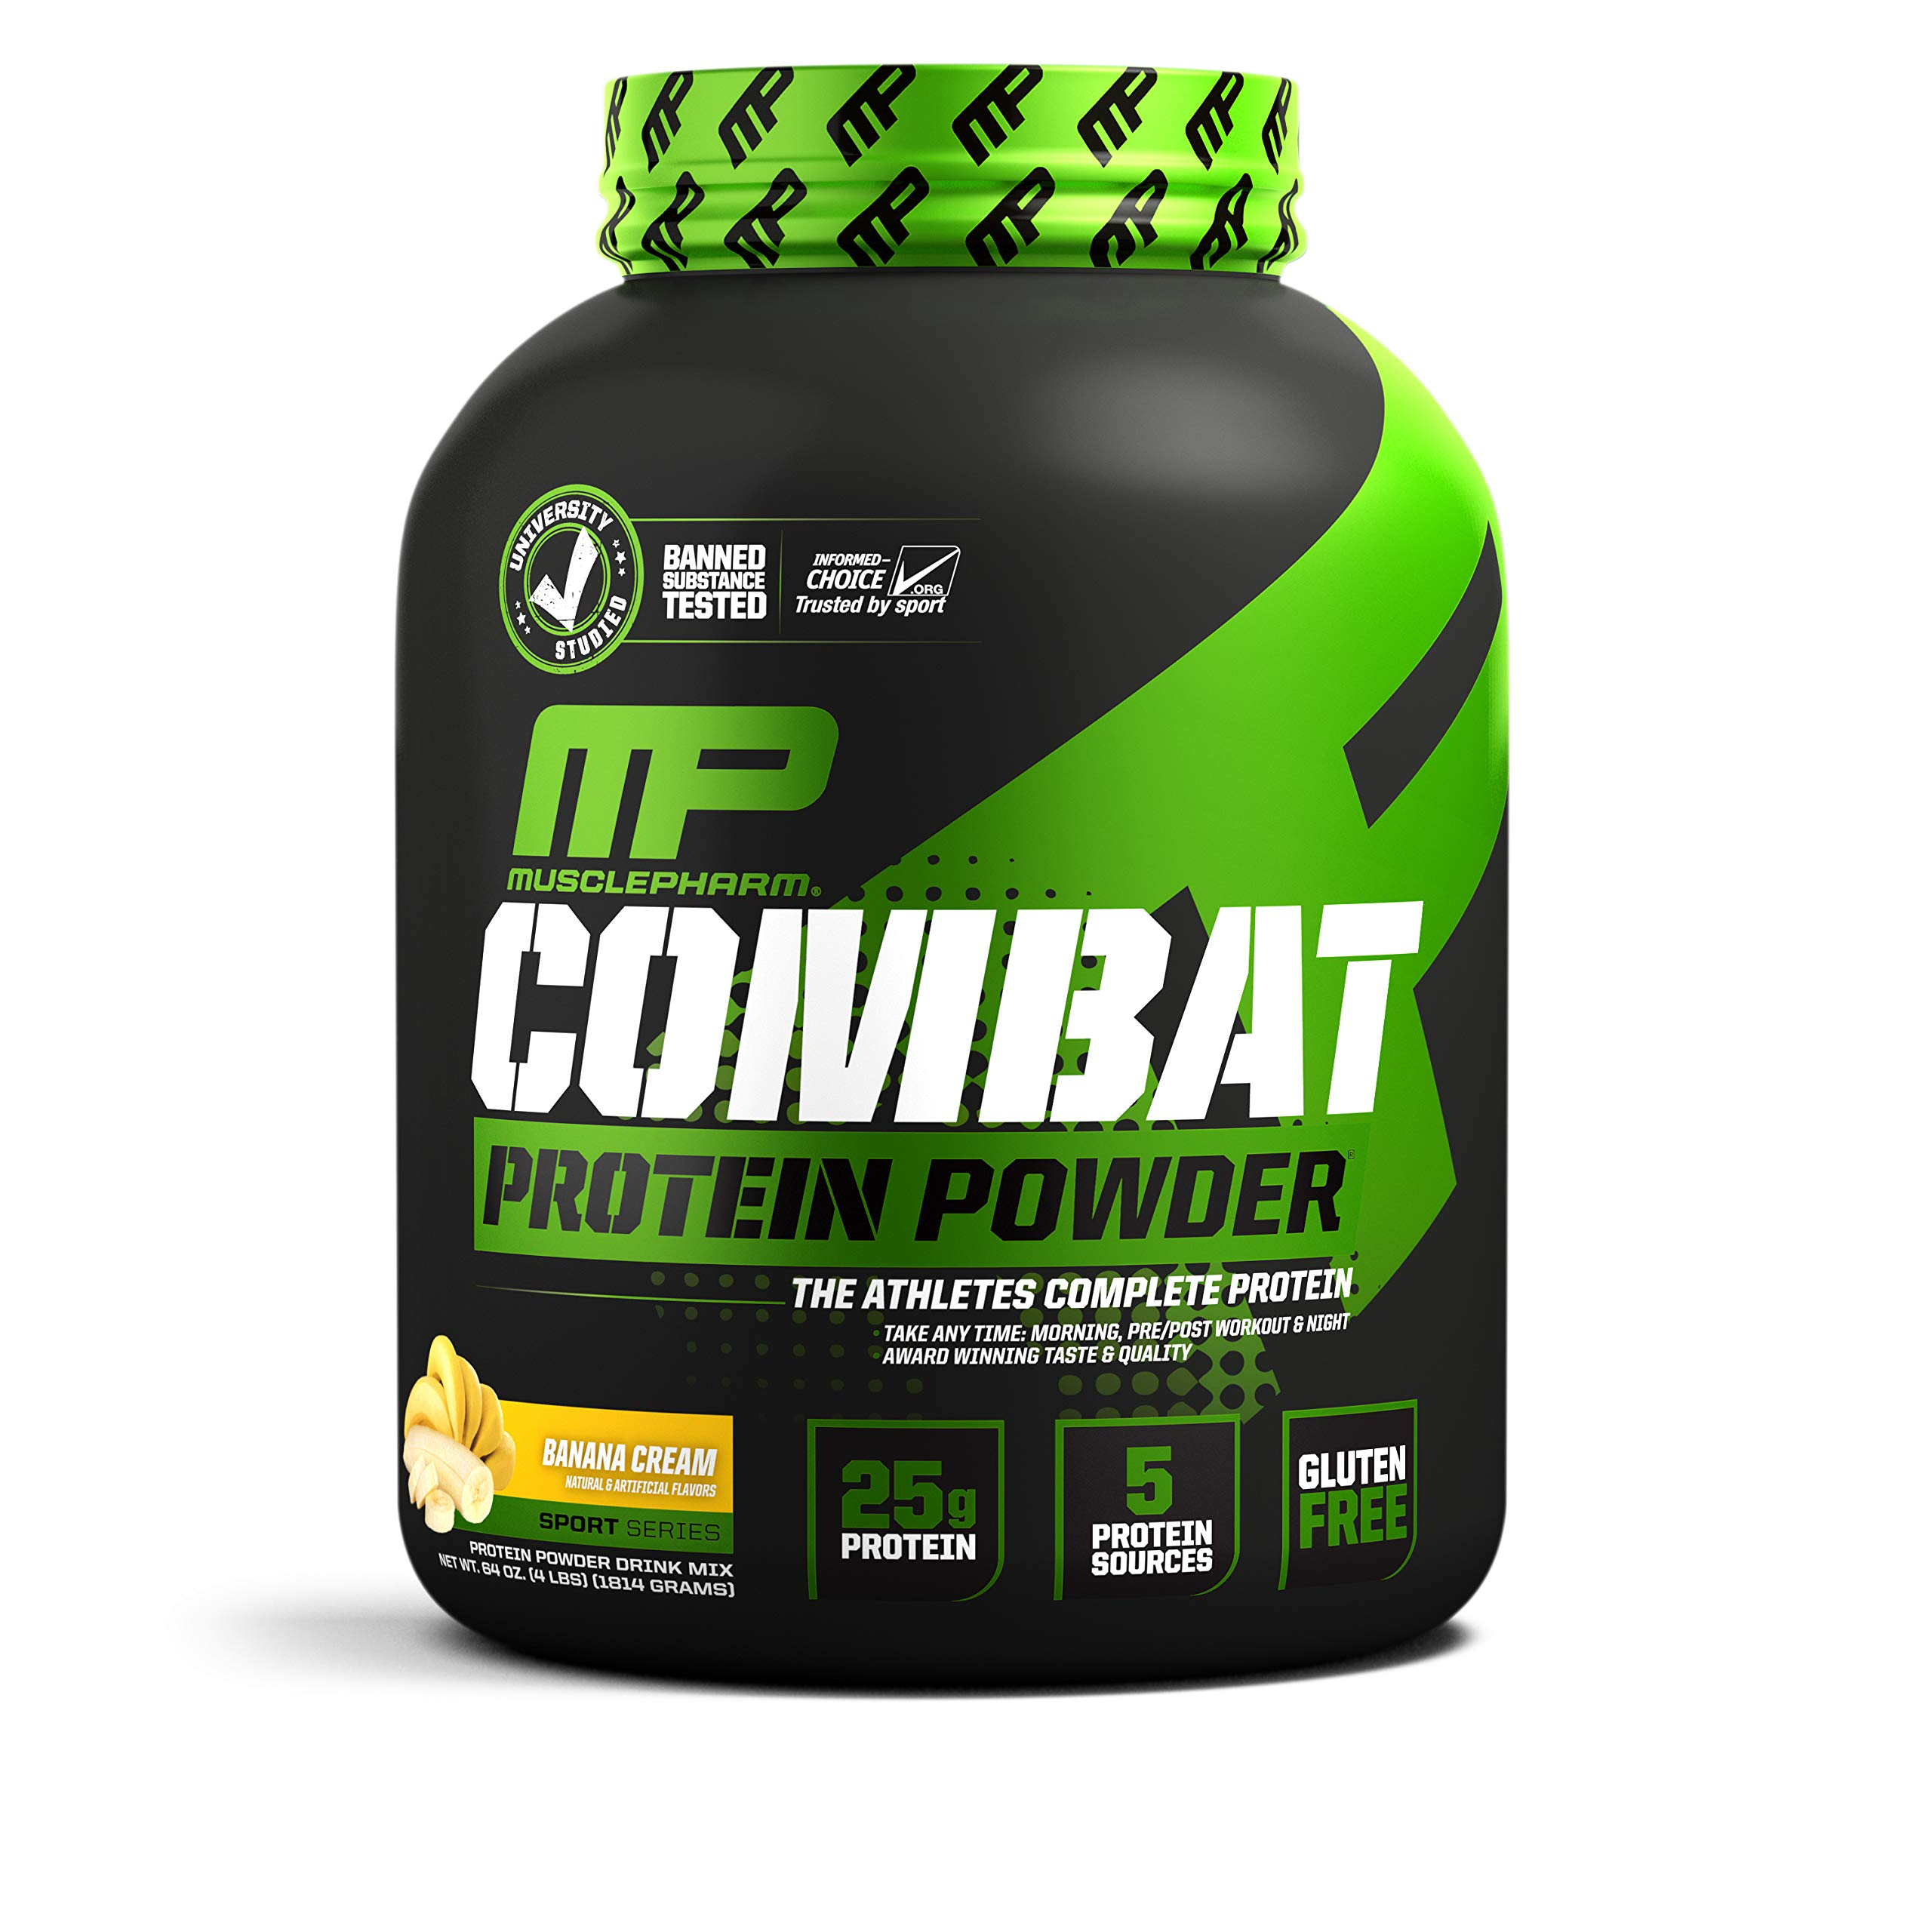 MusclePharm Combat Protein Powder, Essential Whey Protein Powder, Isolate Whey Protein, Casein and Egg Protein with BCAAs and Glutamine for Recovery, Banana Cream, 4-Pound, 54 Servings by Muscle Pharm